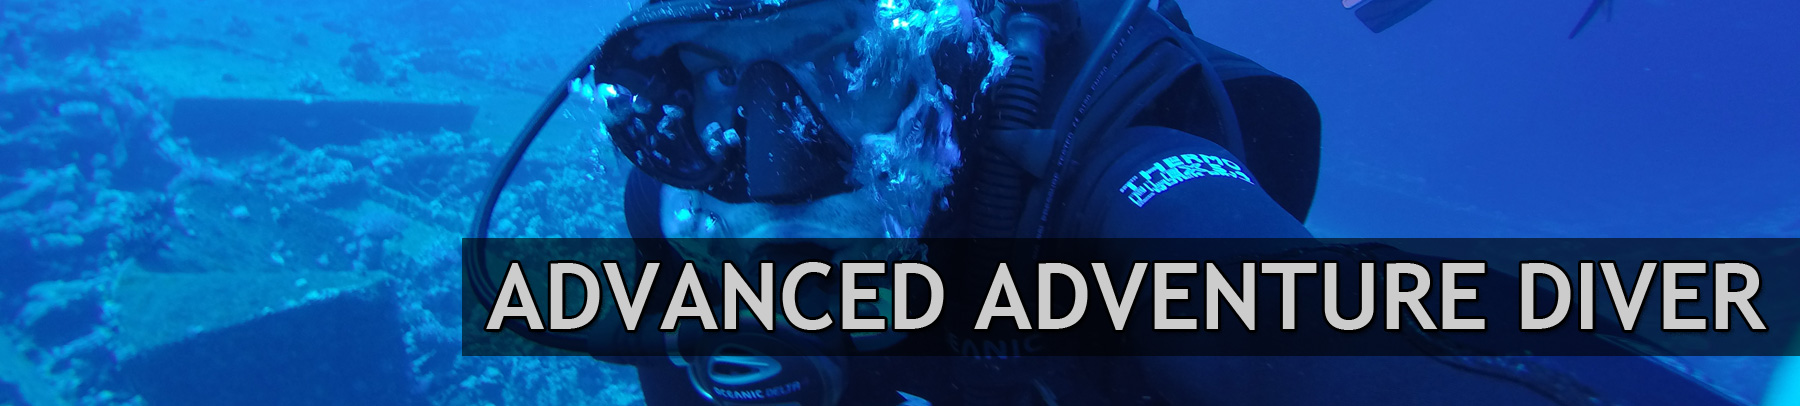 Kategorie-header-Advanced-Adventure-Diver